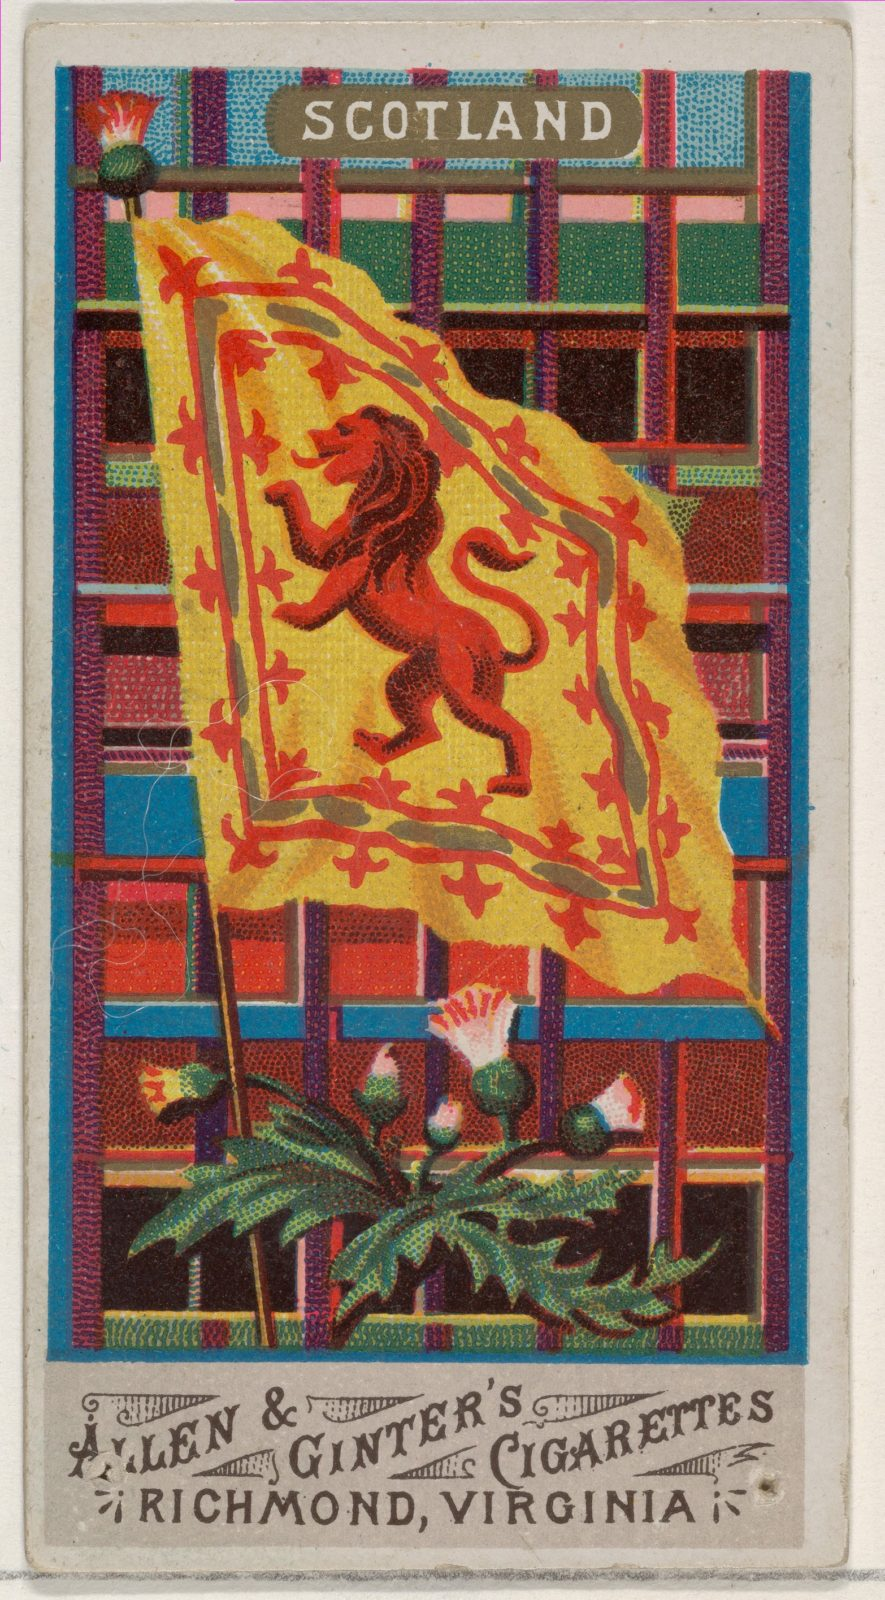 Scotland, from Flags of All Nations, Series 1 (N9) for Allen & Ginter Cigarettes Brands